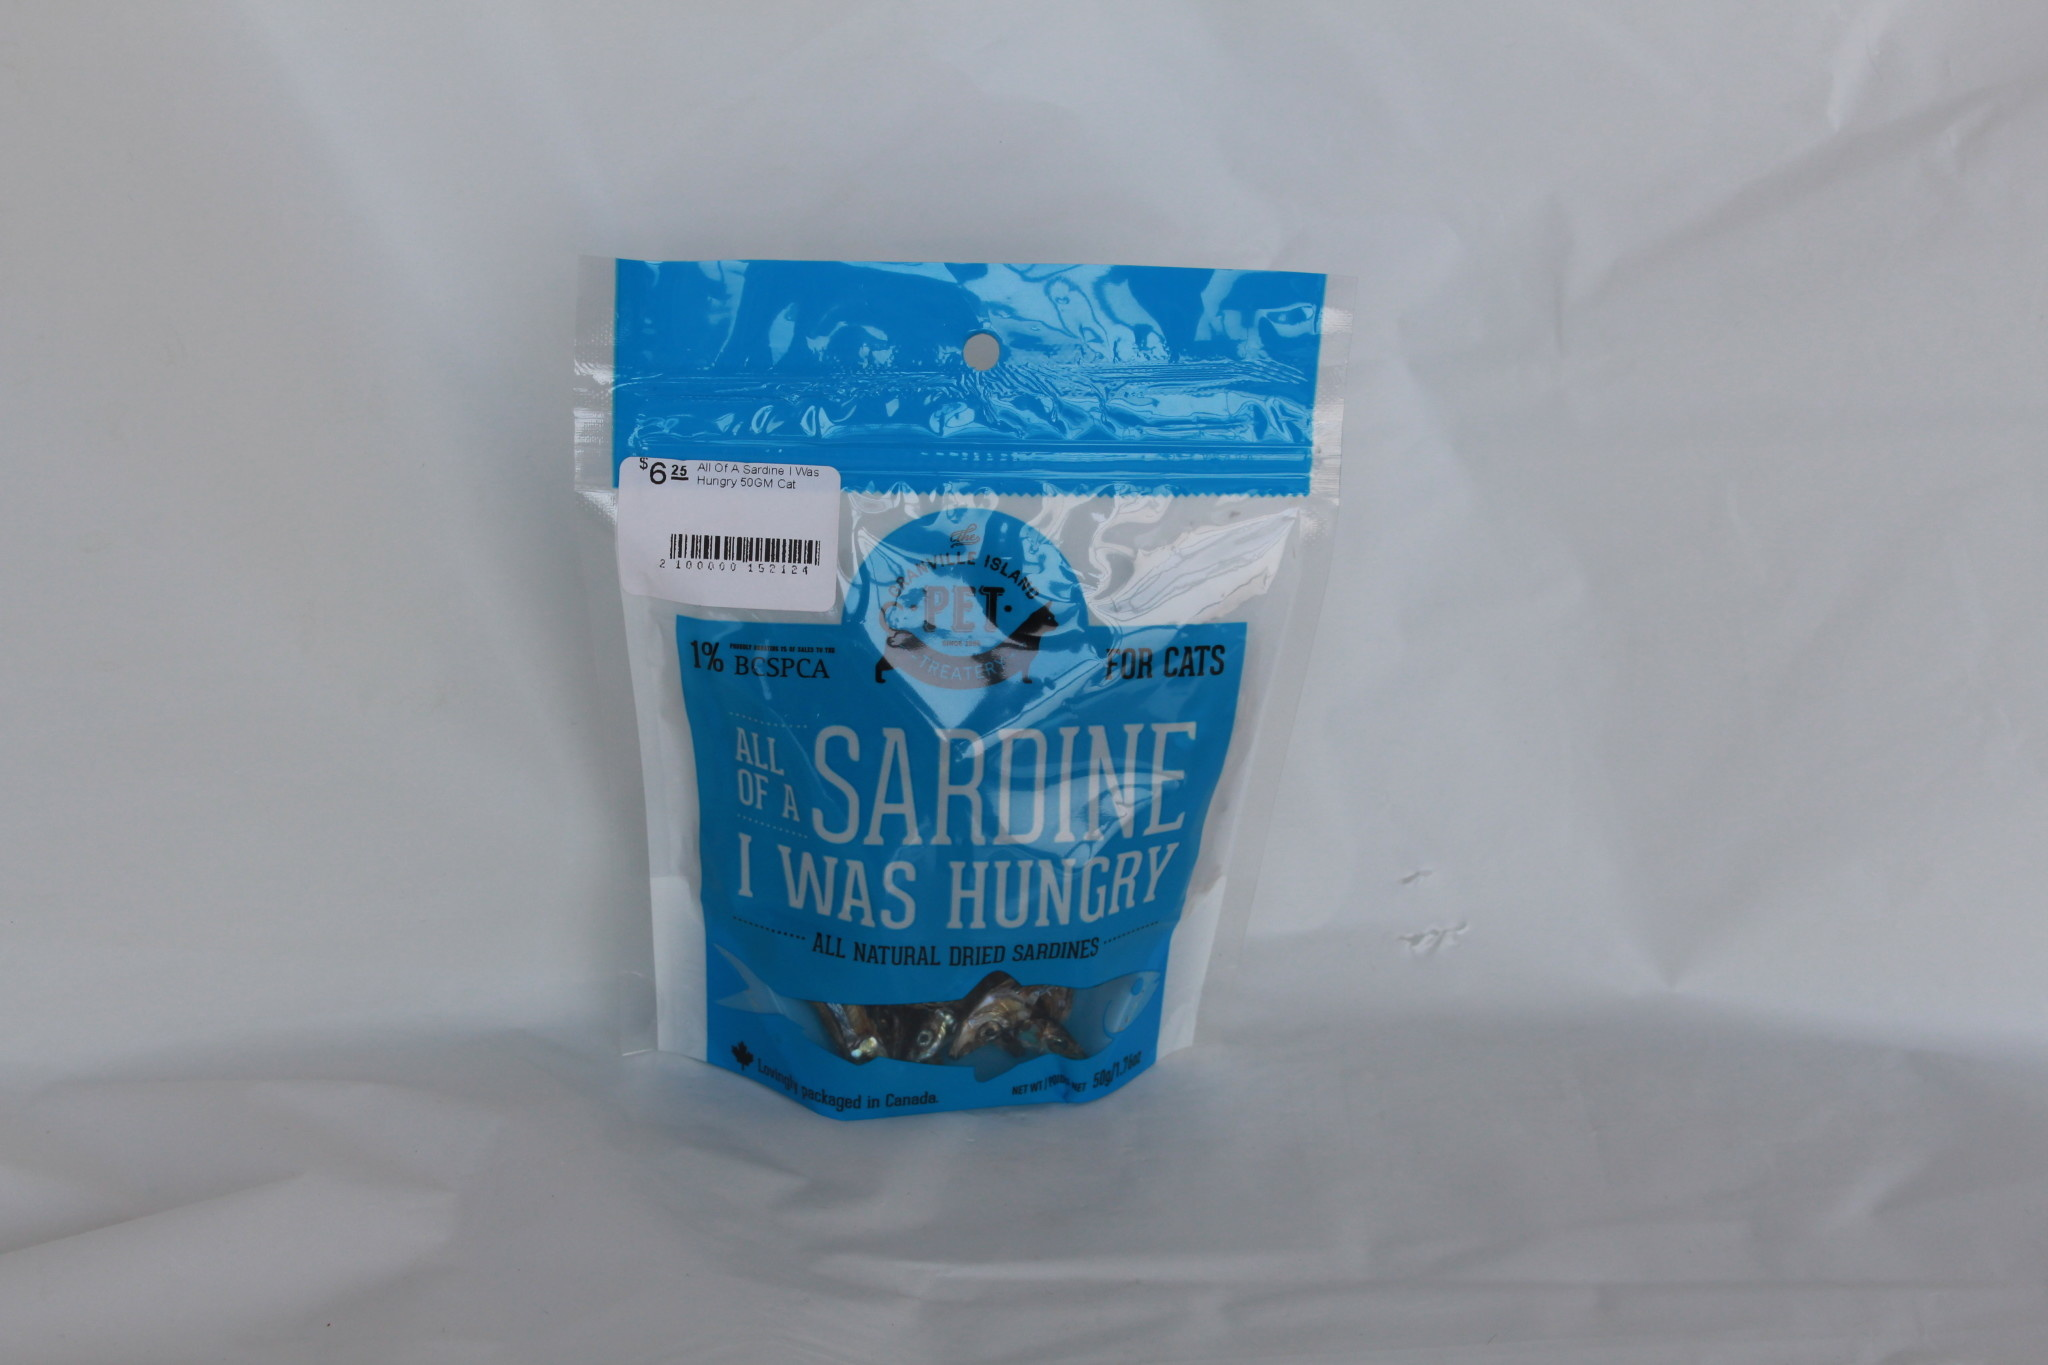 All Of A Sardine I Was Hungry 50GM Cat-1